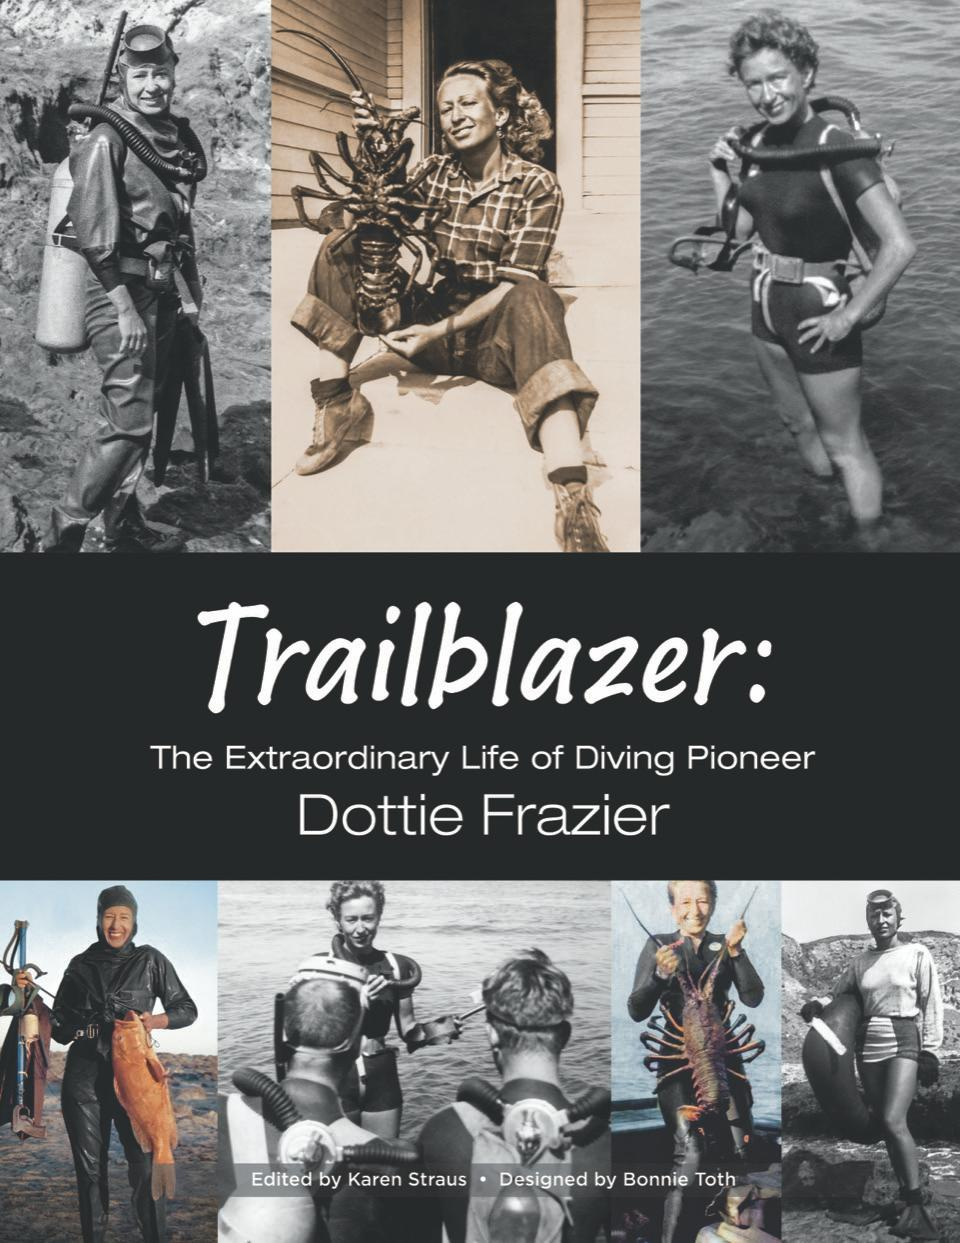 Trailblazer. The Extraordinary Life of Diving Pioneer Dottie Frazier